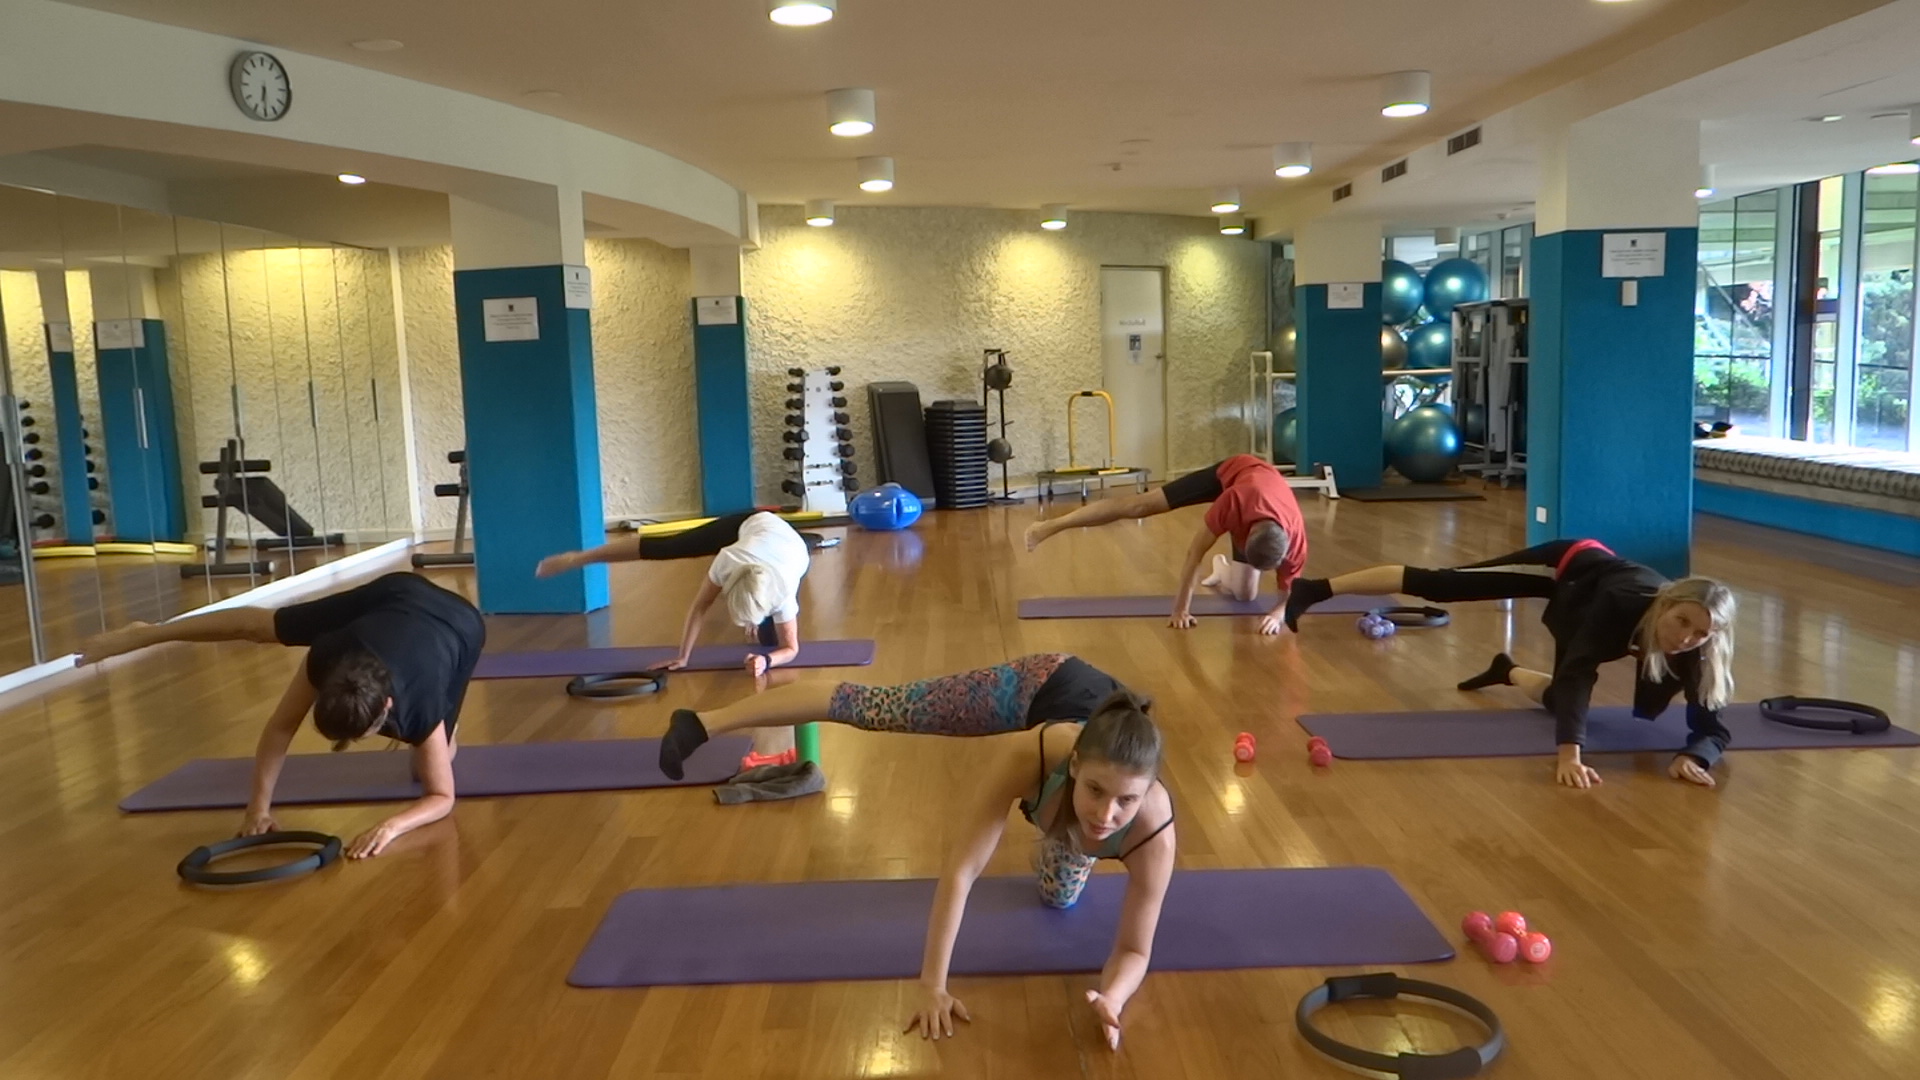 Feeling the Glut Burn with our 60 sec Glut Blitz!